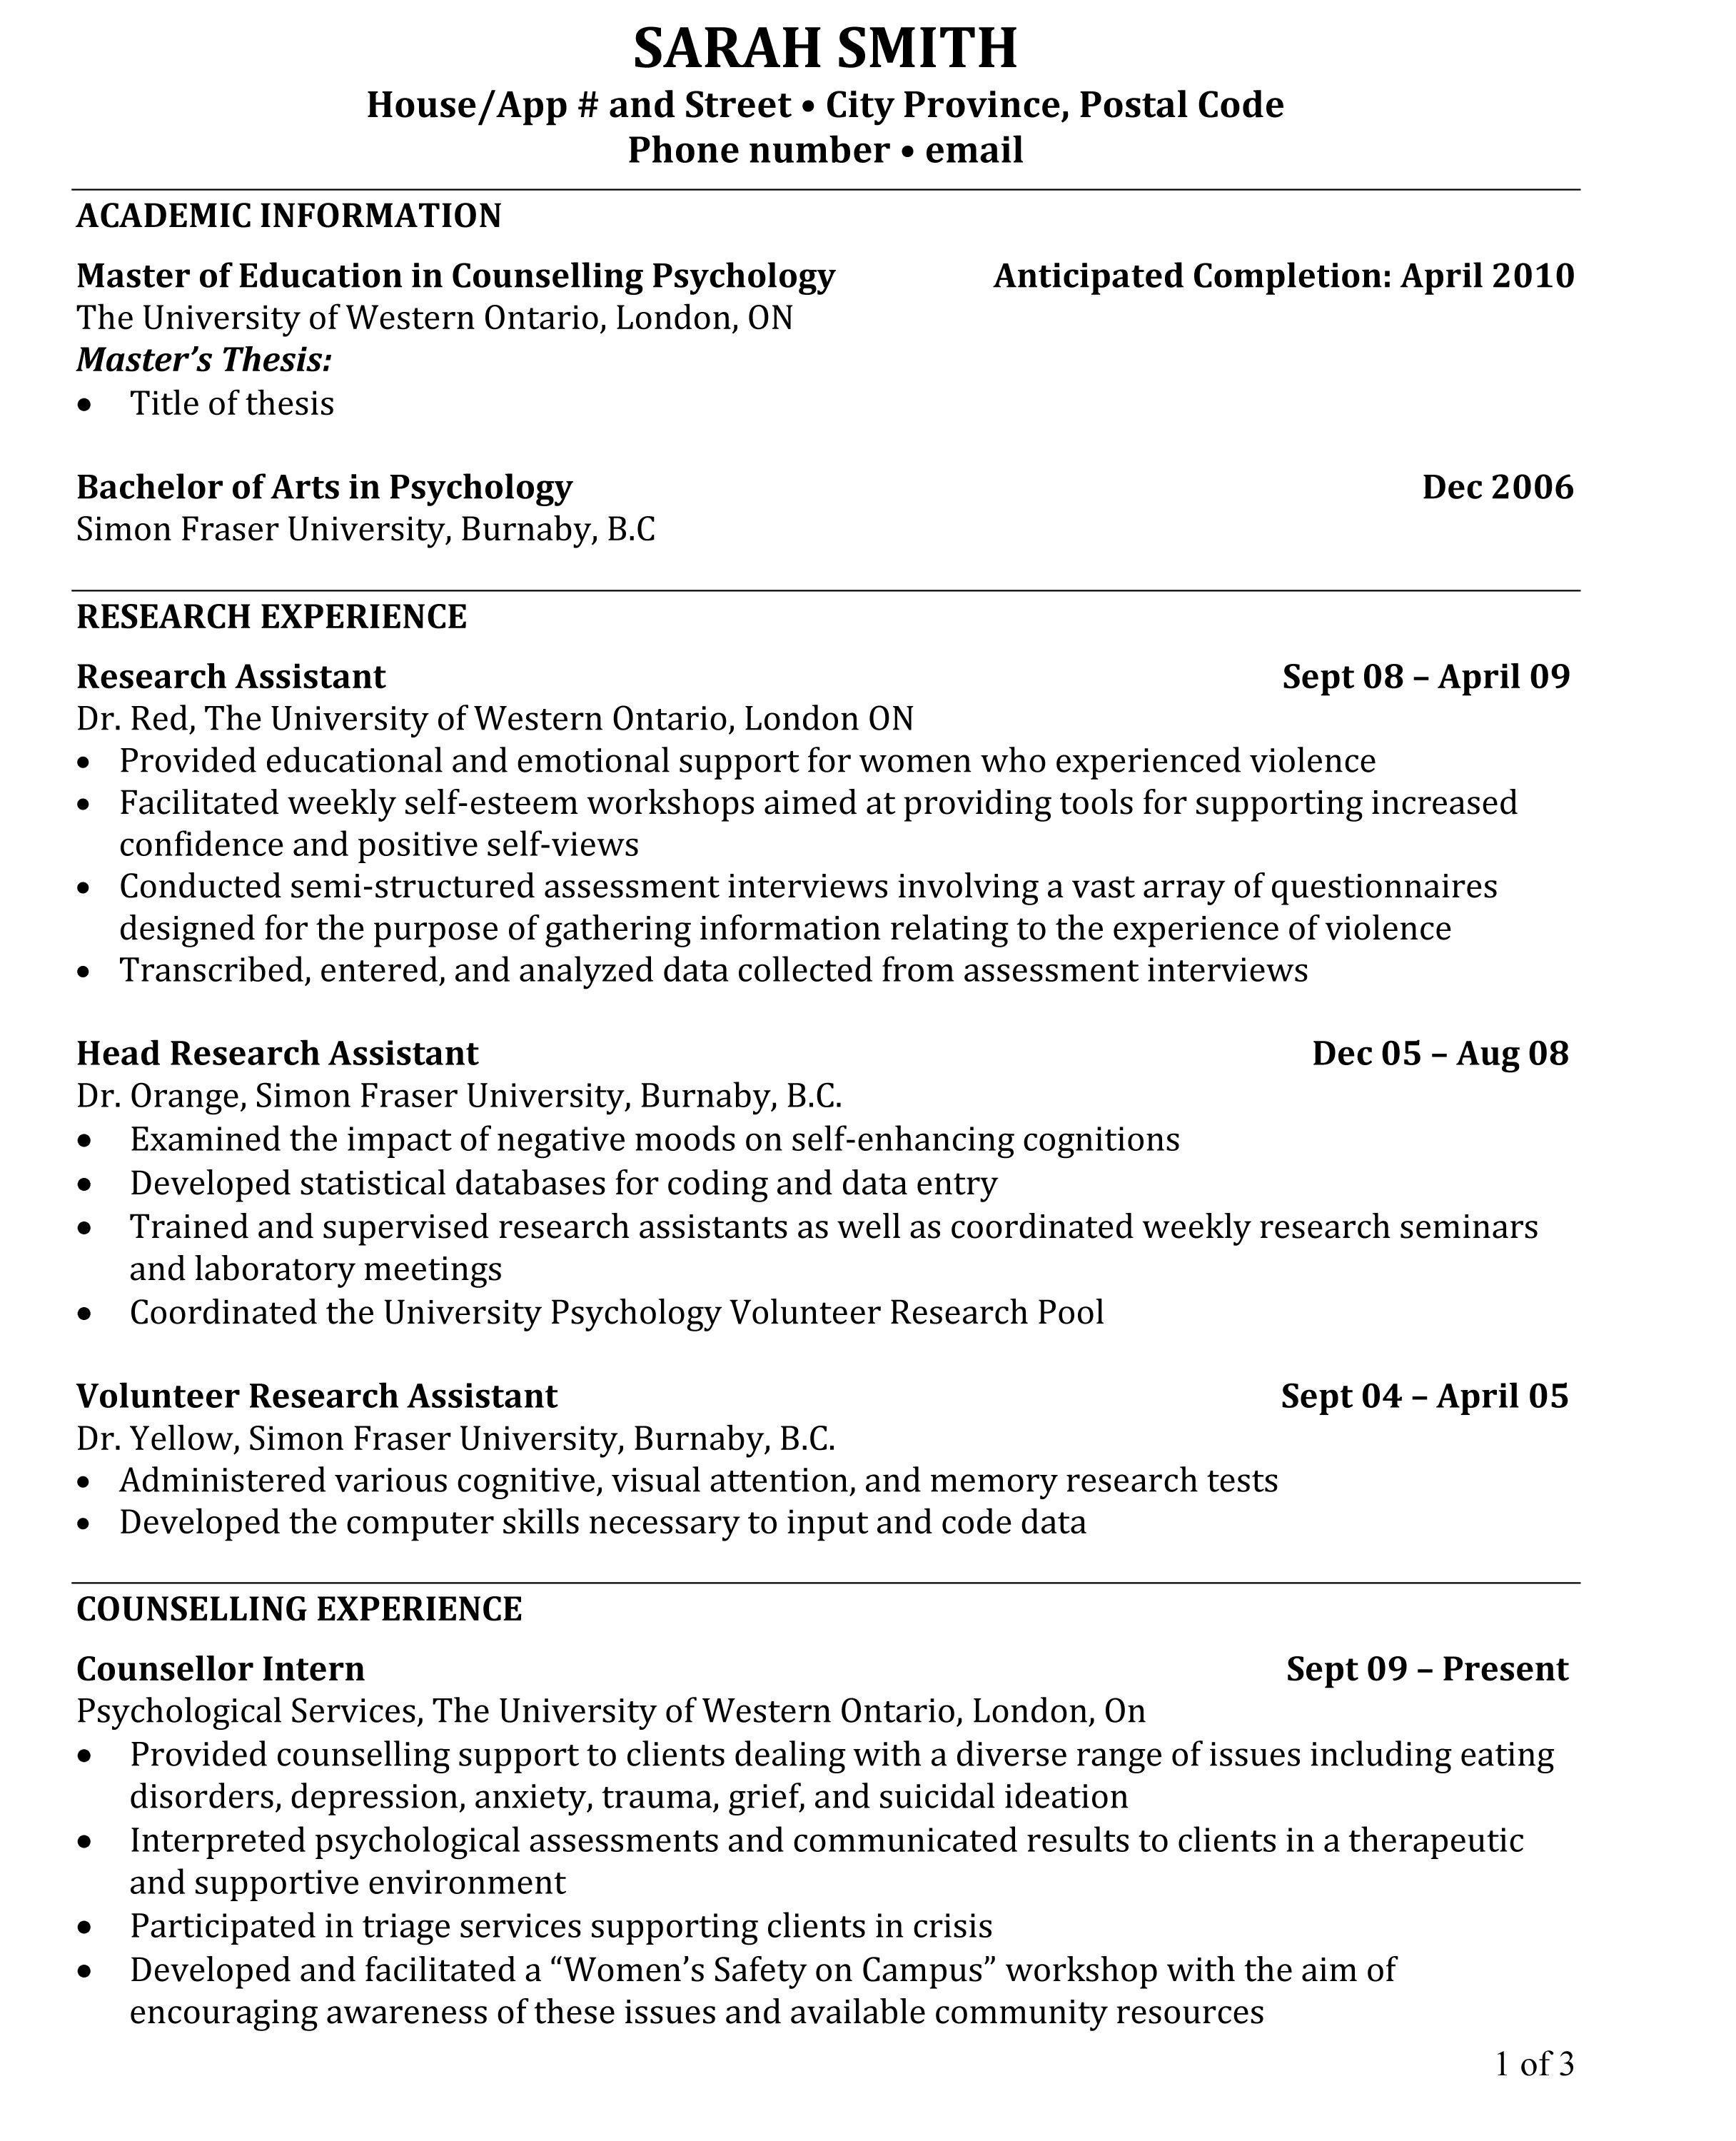 Undergraduate Resume Sample Pdf Phd Cv The Below Is Much Closer To My Experience Level